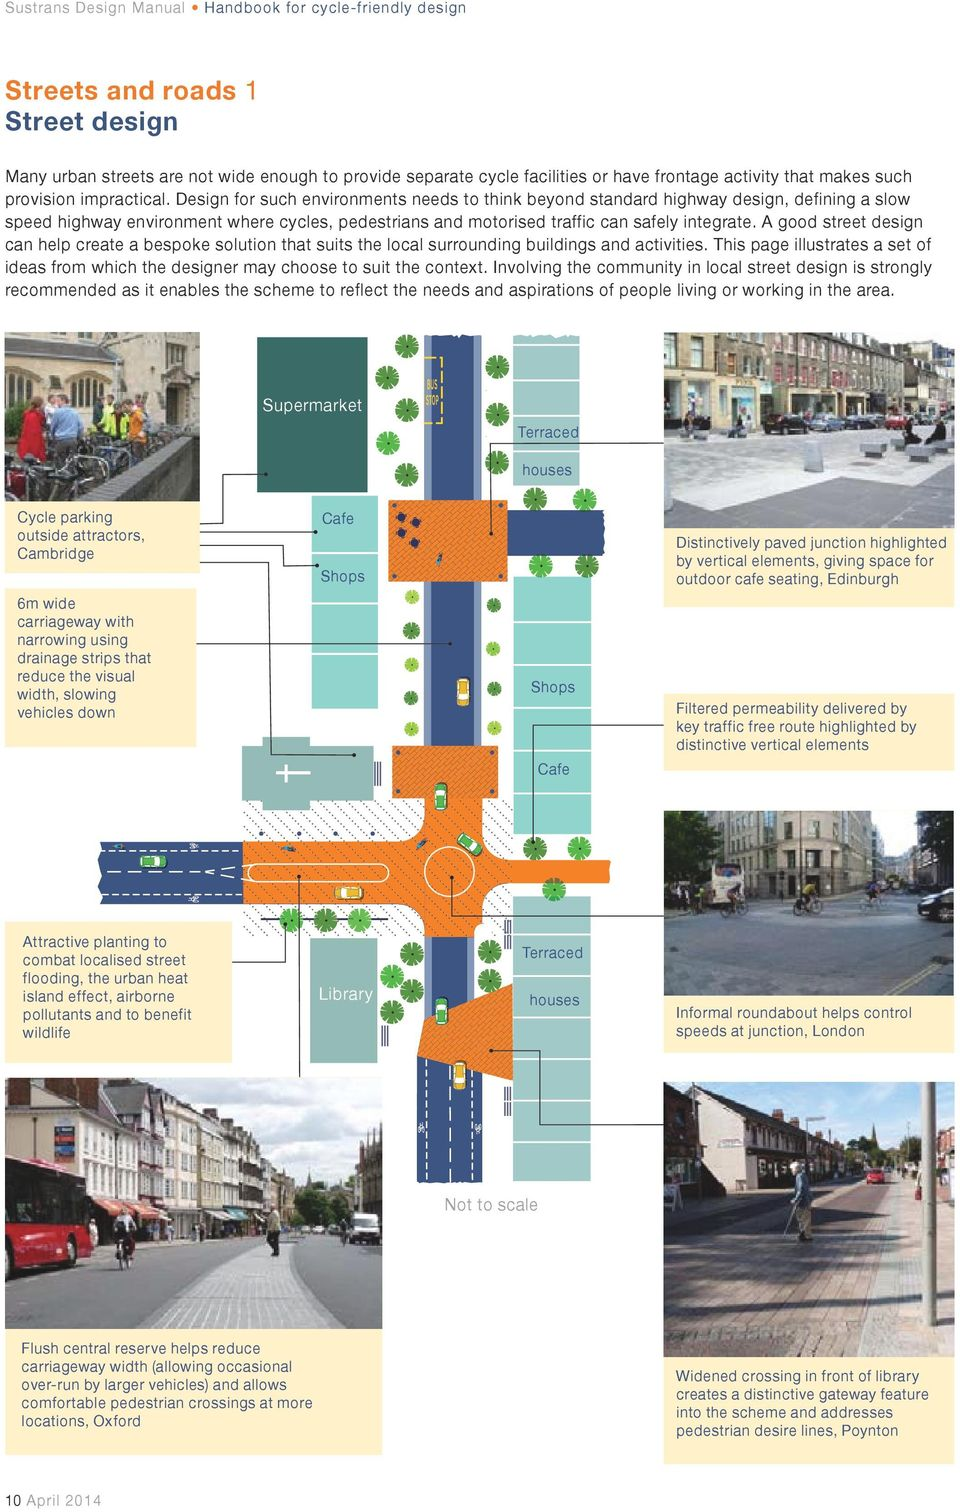 A good street design can help create a bespoke solution that suits the local surrounding buildings and activities.